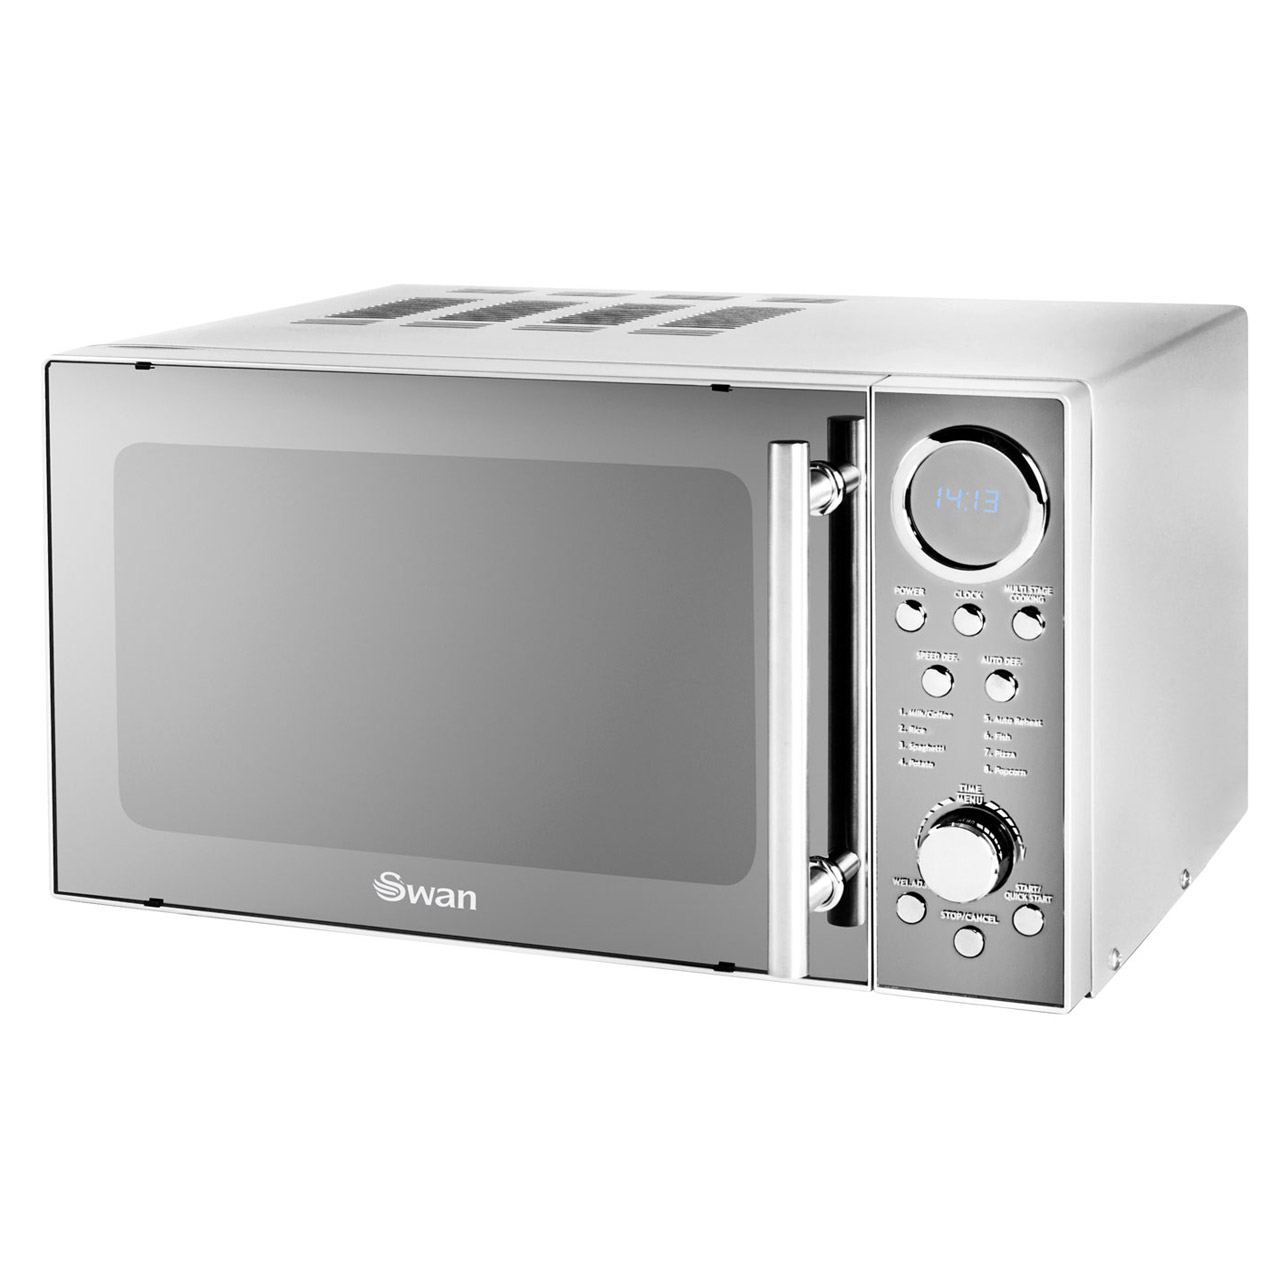 Swan SM3080N Compact Microwave Oven In Silver